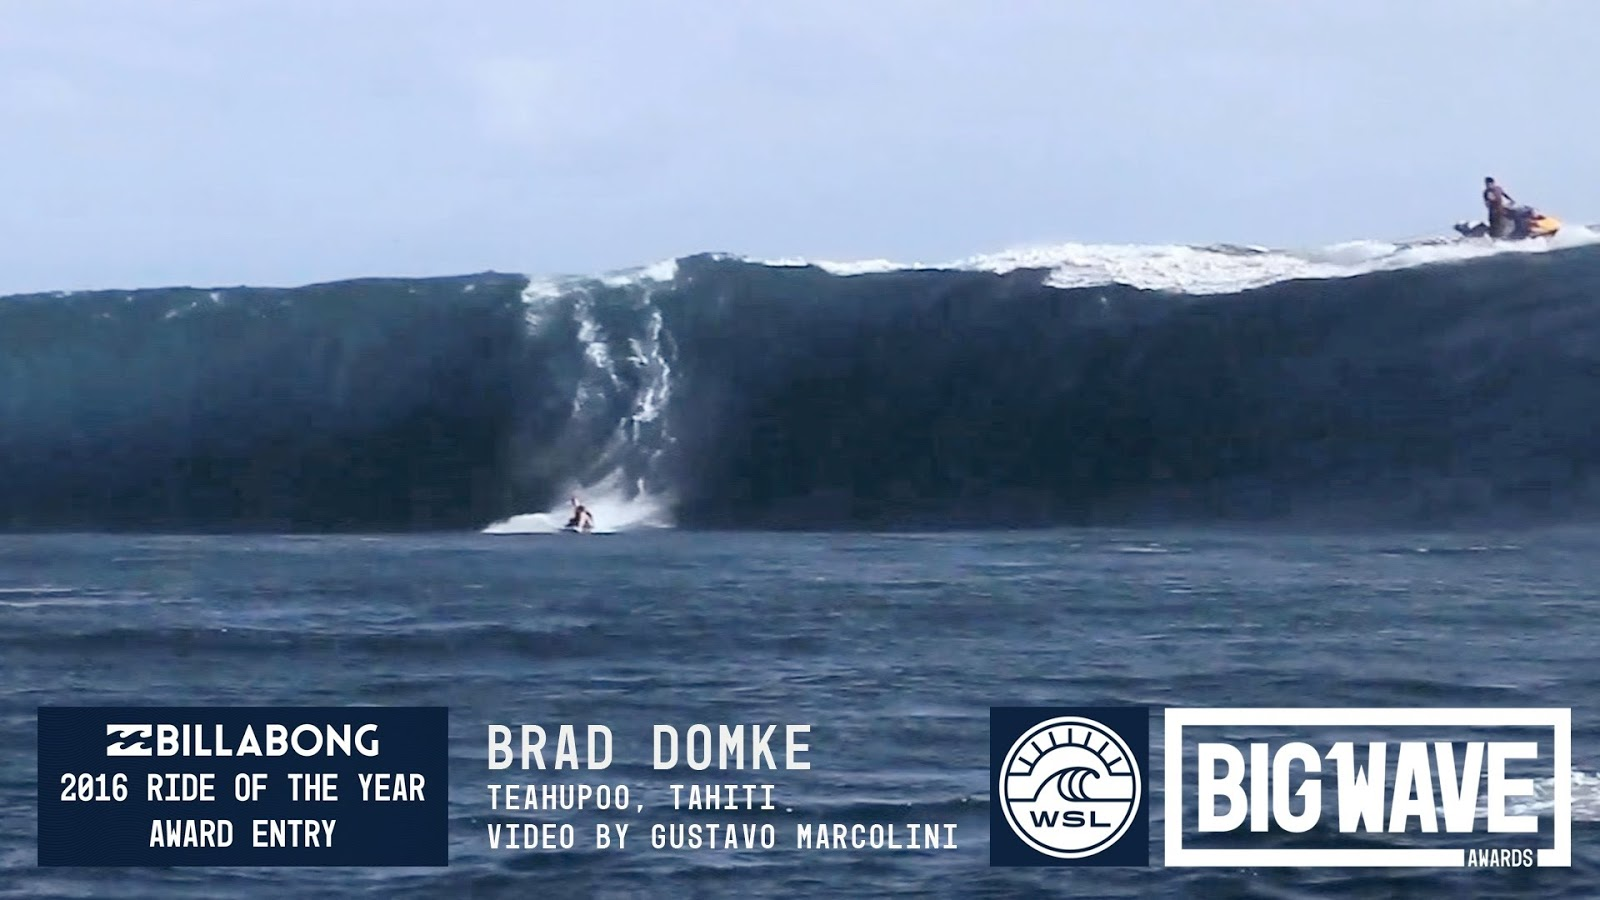 Brad Domke at Teahupoo - 2016 Billabong Ride of the Year Entry - WSL Big Wave Awards